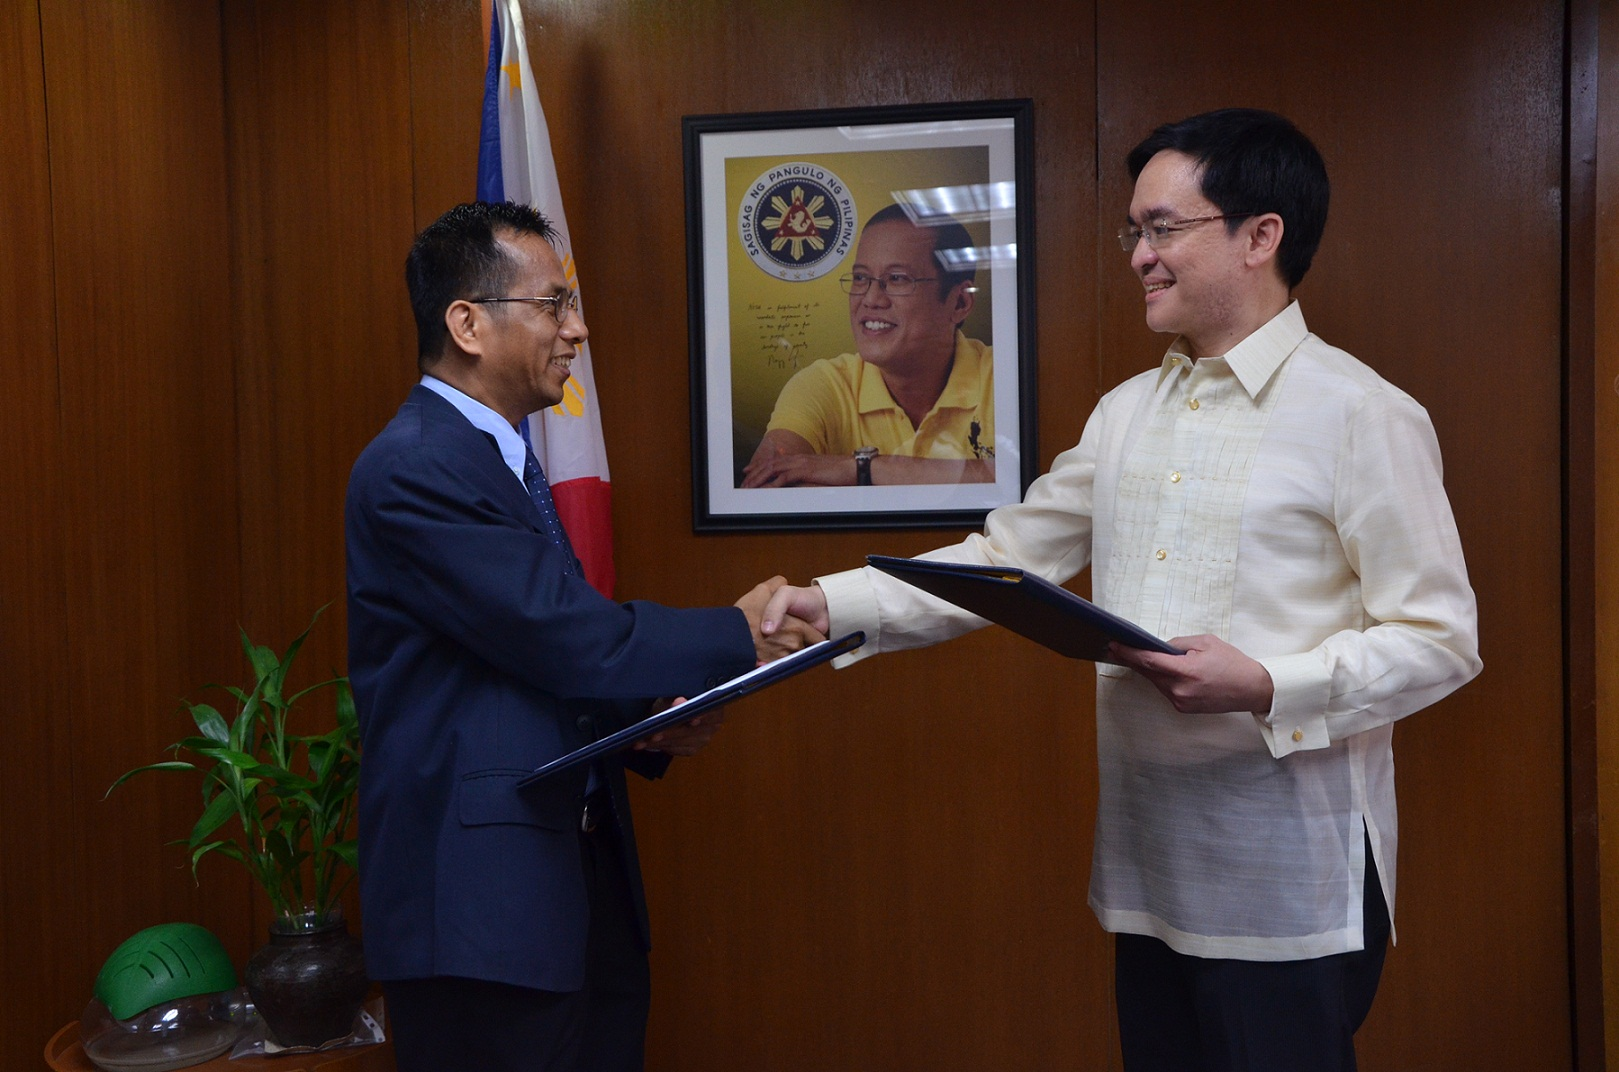 NEW NSCB SECRETARY GENERAL. (From left) Socioeconomic Planning Secretary Arsenio Balisacan shakes the hand of Dr. Jose Ramon Albert who becomes the NSCB's 3rd Secretary General. Photo taken by Leody Barcelon of the National Economic and Development Authority.